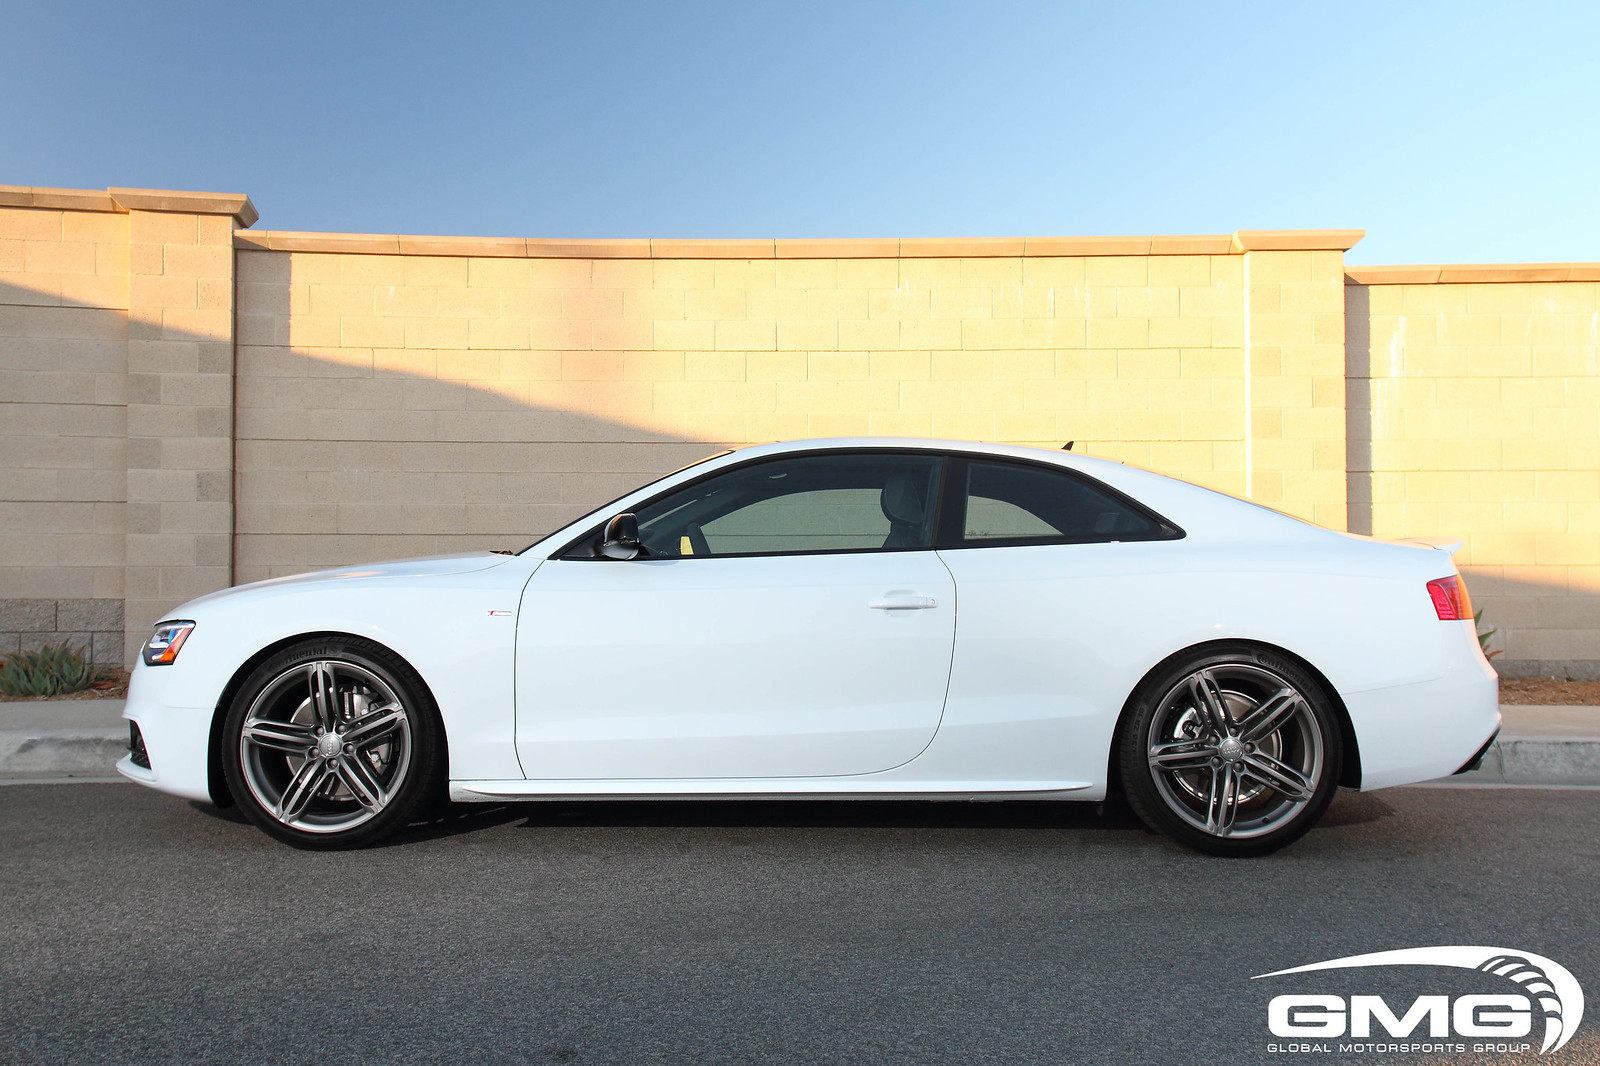 Gmg Racing 2014 Audi A5 S Line Lowered W Gmg Lowering Springs